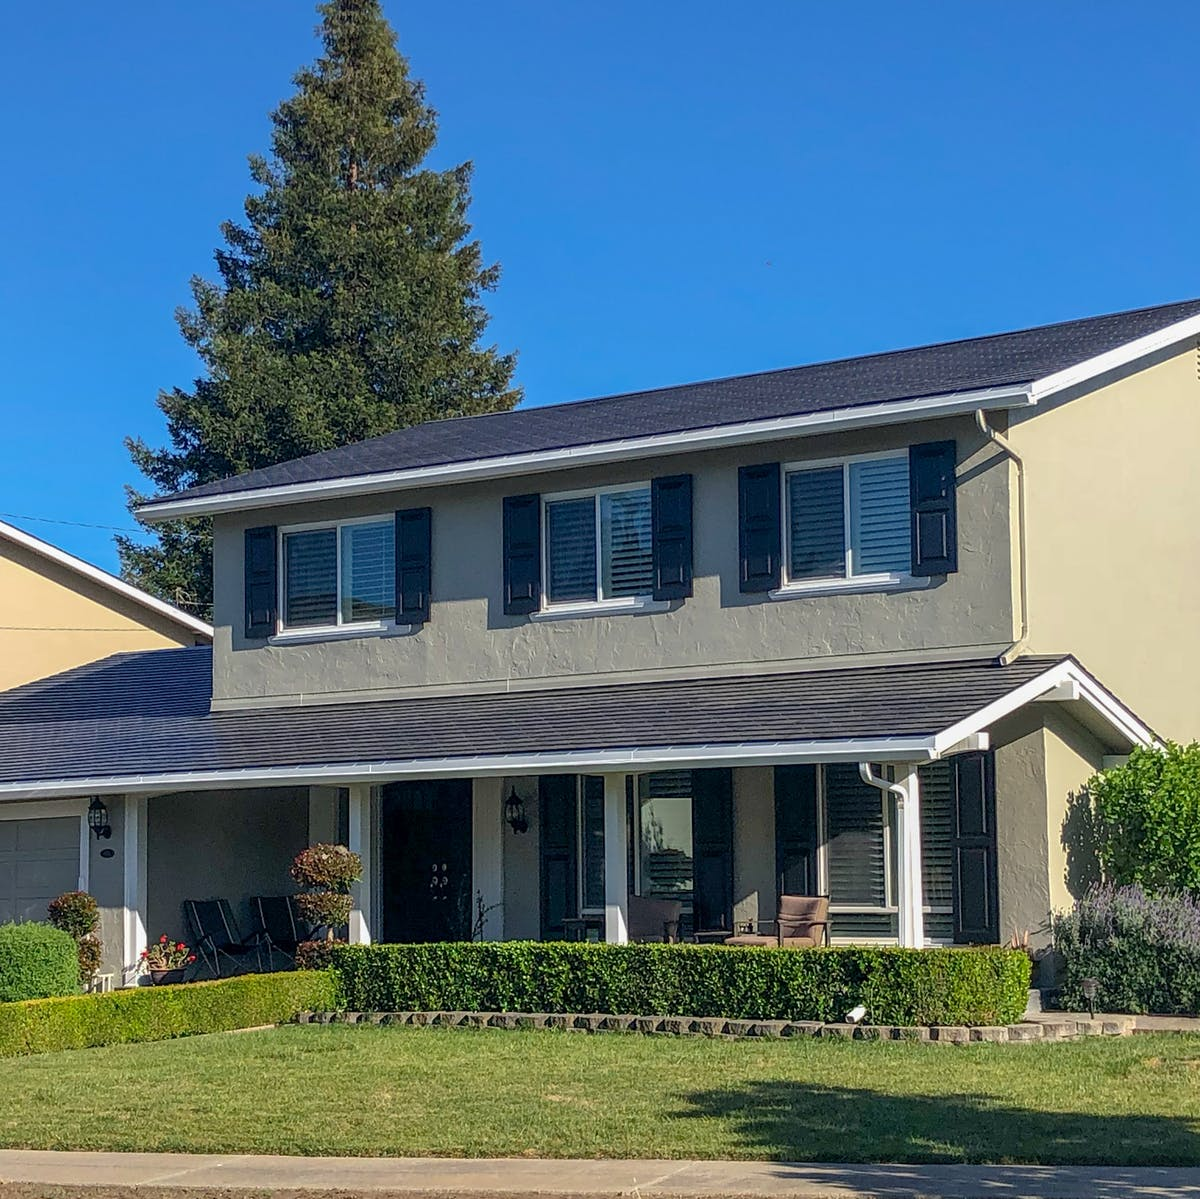 Tesla Solar Roof: 9 things you don't realize until you own one for a year